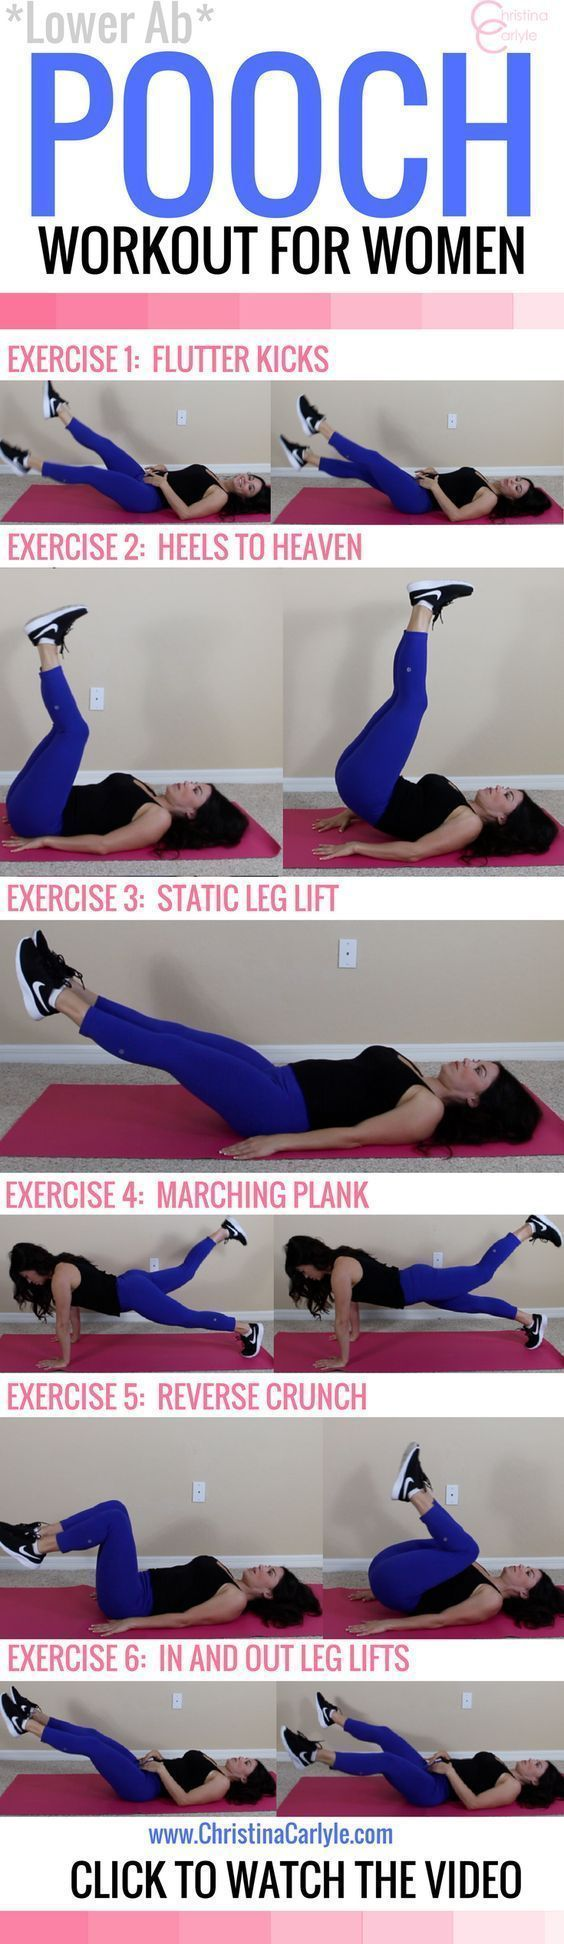 A STRONG core is ESSENTIAL for getting in shape and staying fit. This stability ball ab workout at home is PERFECT for burning